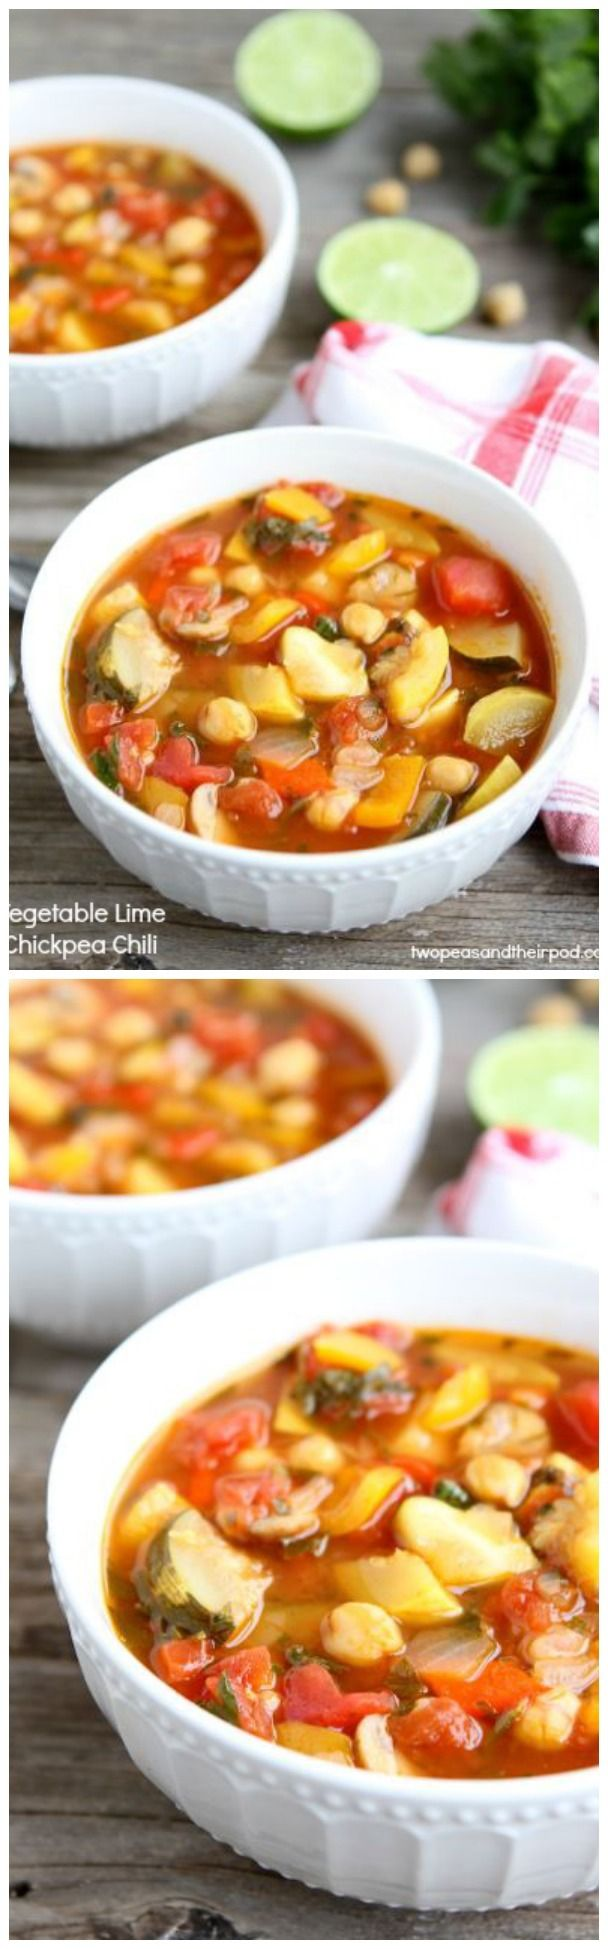 Vegetable Lime Chickpea Chili Recipe on twopeasandtheirpod.com Love ...